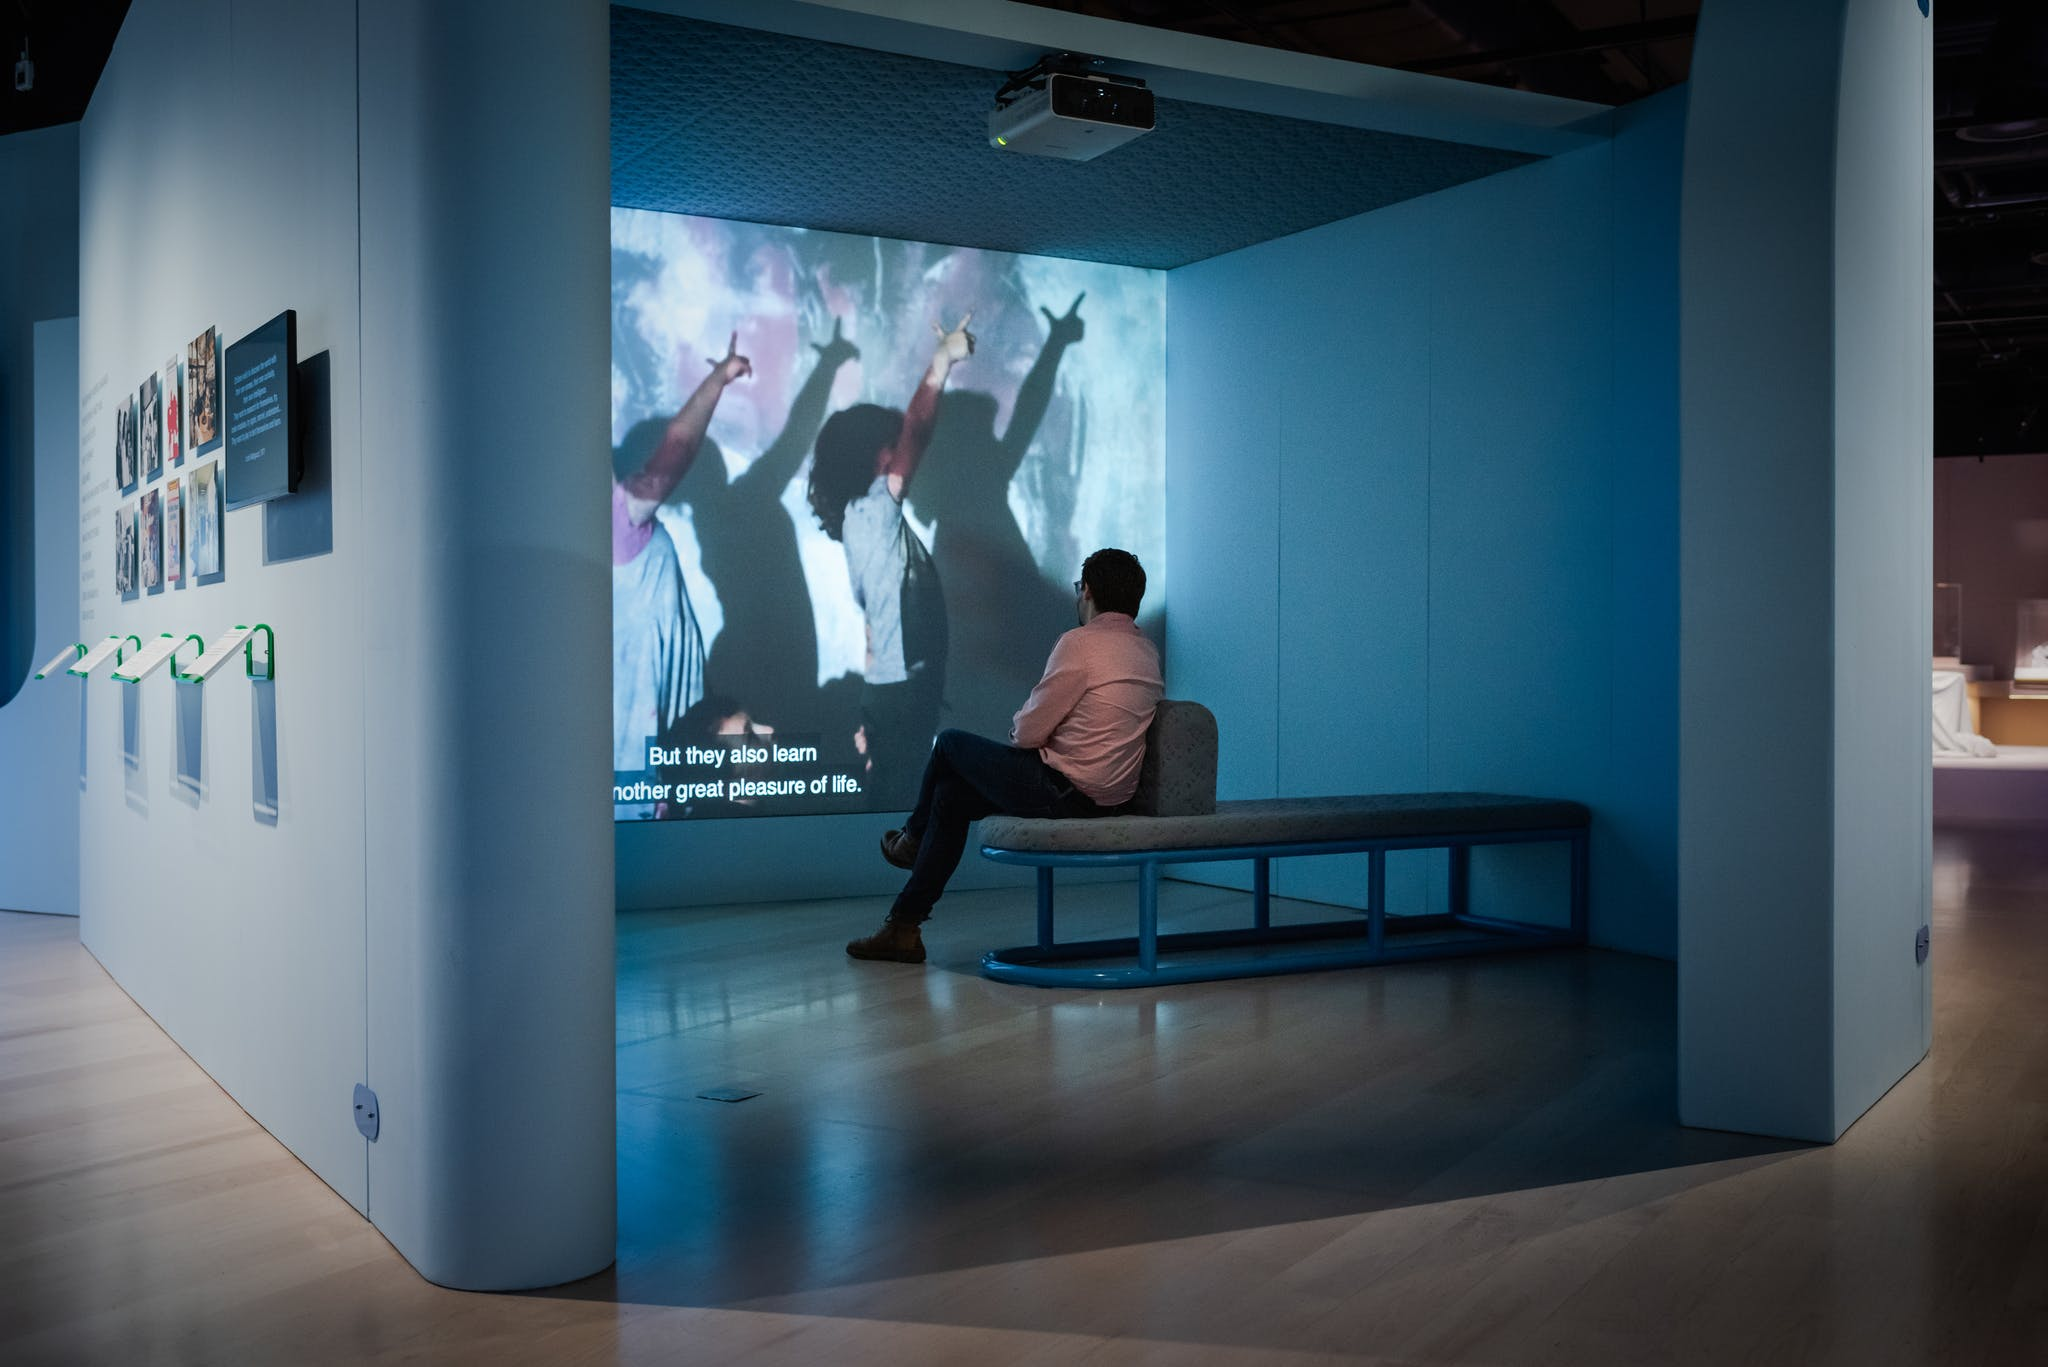 A man in a suit leaning against the wall watching a video in the exhibition hall